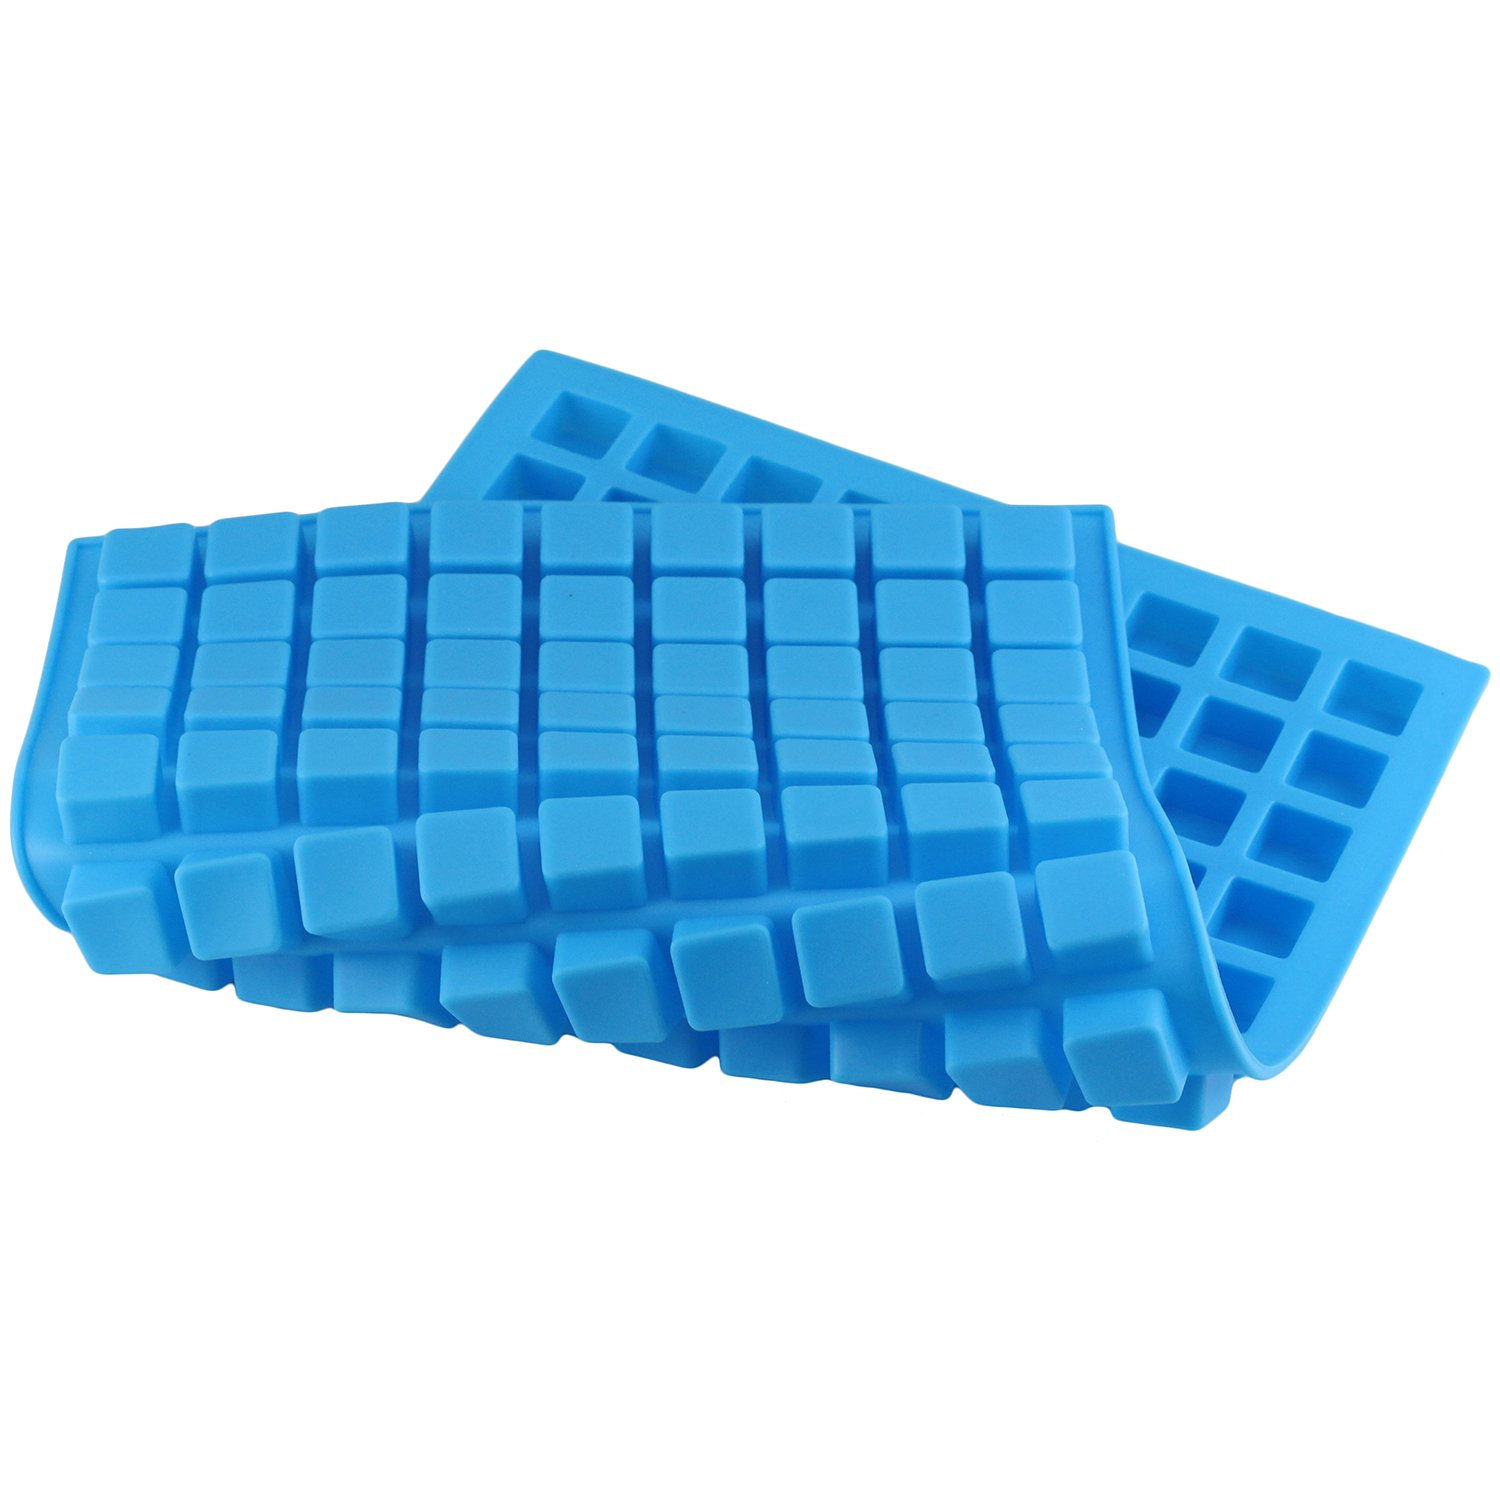 Silicone Molds for Making Homemade Chocolate Candy Gummy Jelly Mujiang 126-Cavity Ice Cube Tray